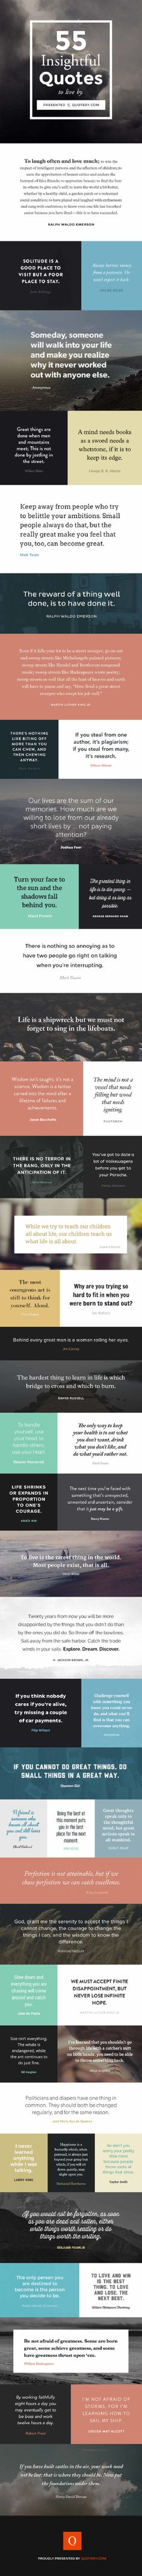 Get inspired by over 50 #quotes from famous #writers, visualized by Quotery